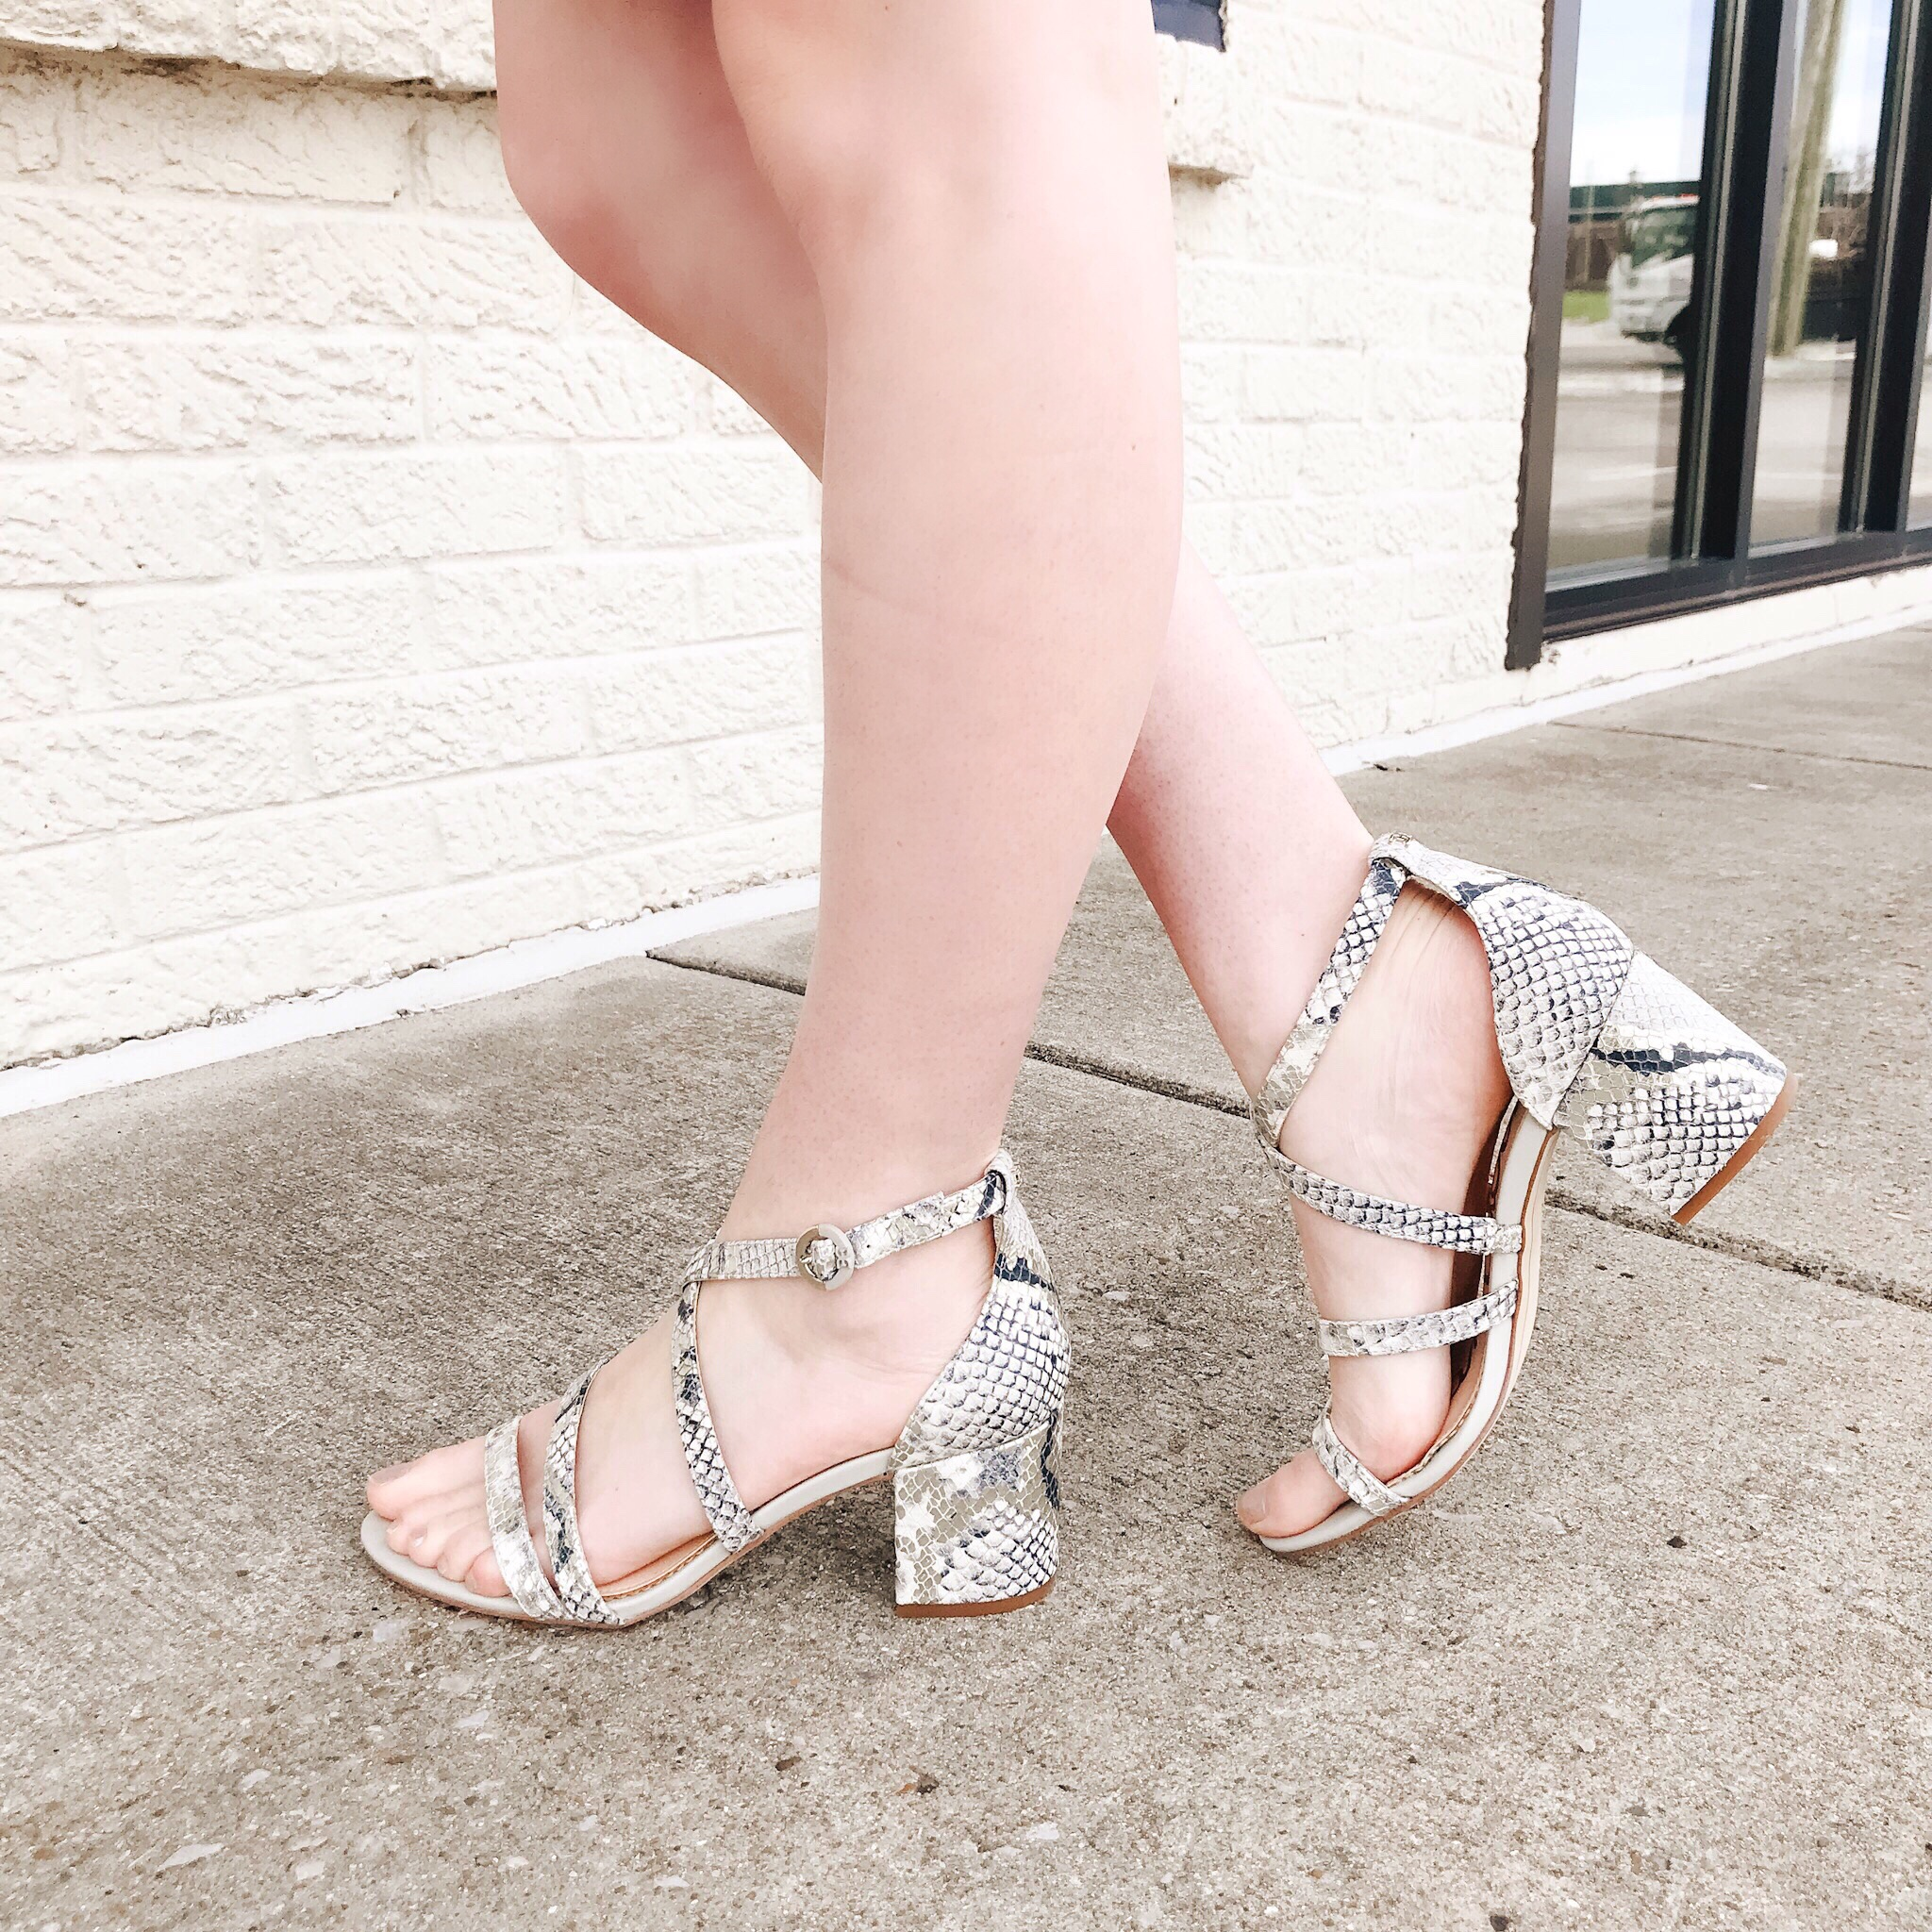 Pop of Print - We added a playful pop of print to this overall neutral look with these snakeskin sandals!